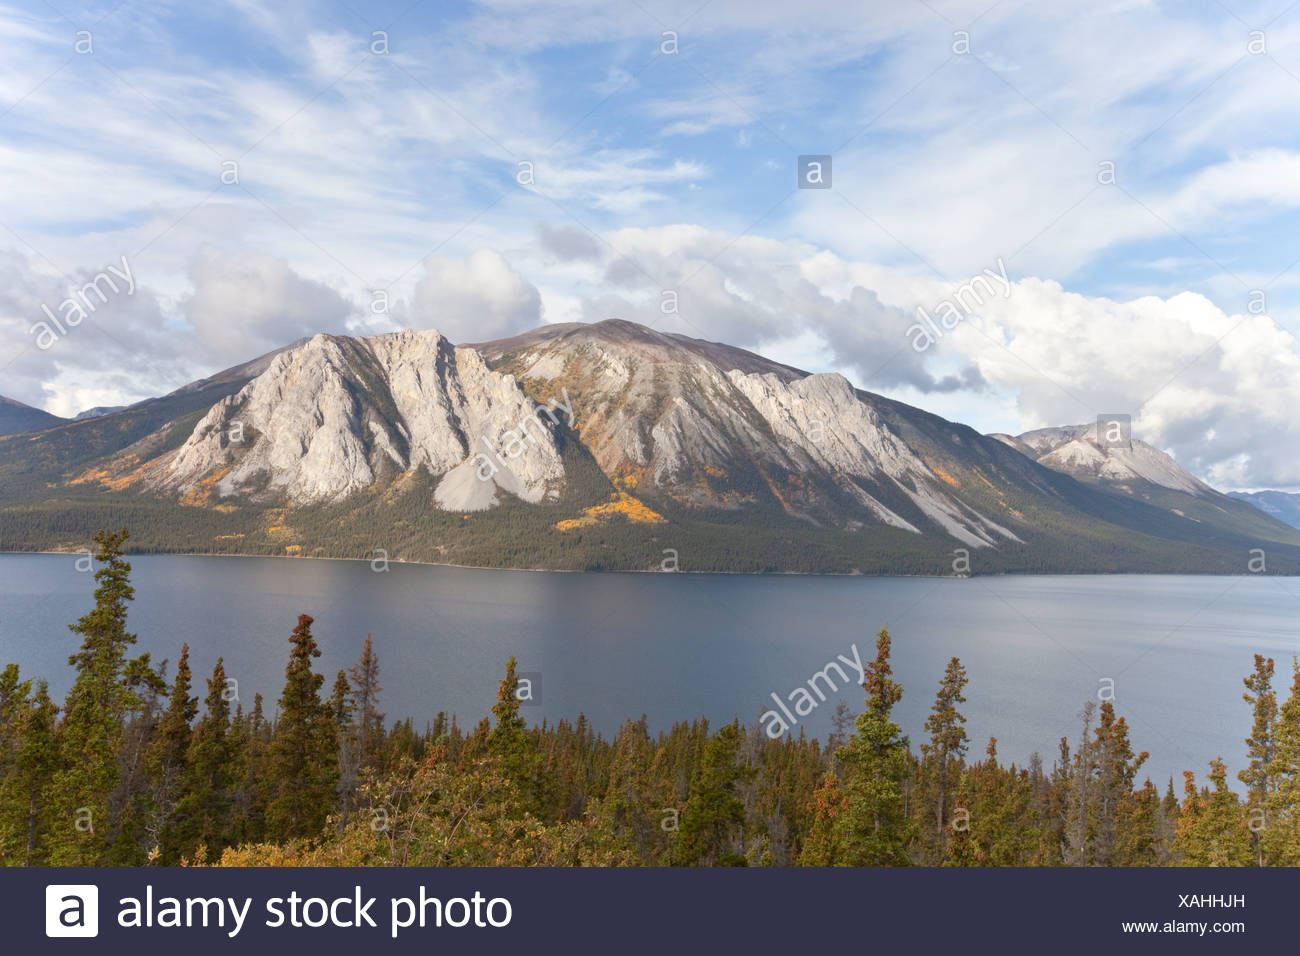 Mountain at Windy Arm of Tagish Lake, Indian summer, leaves in fall colours, autumn, South Klondike Highway, Yukon Territory - Stock Image